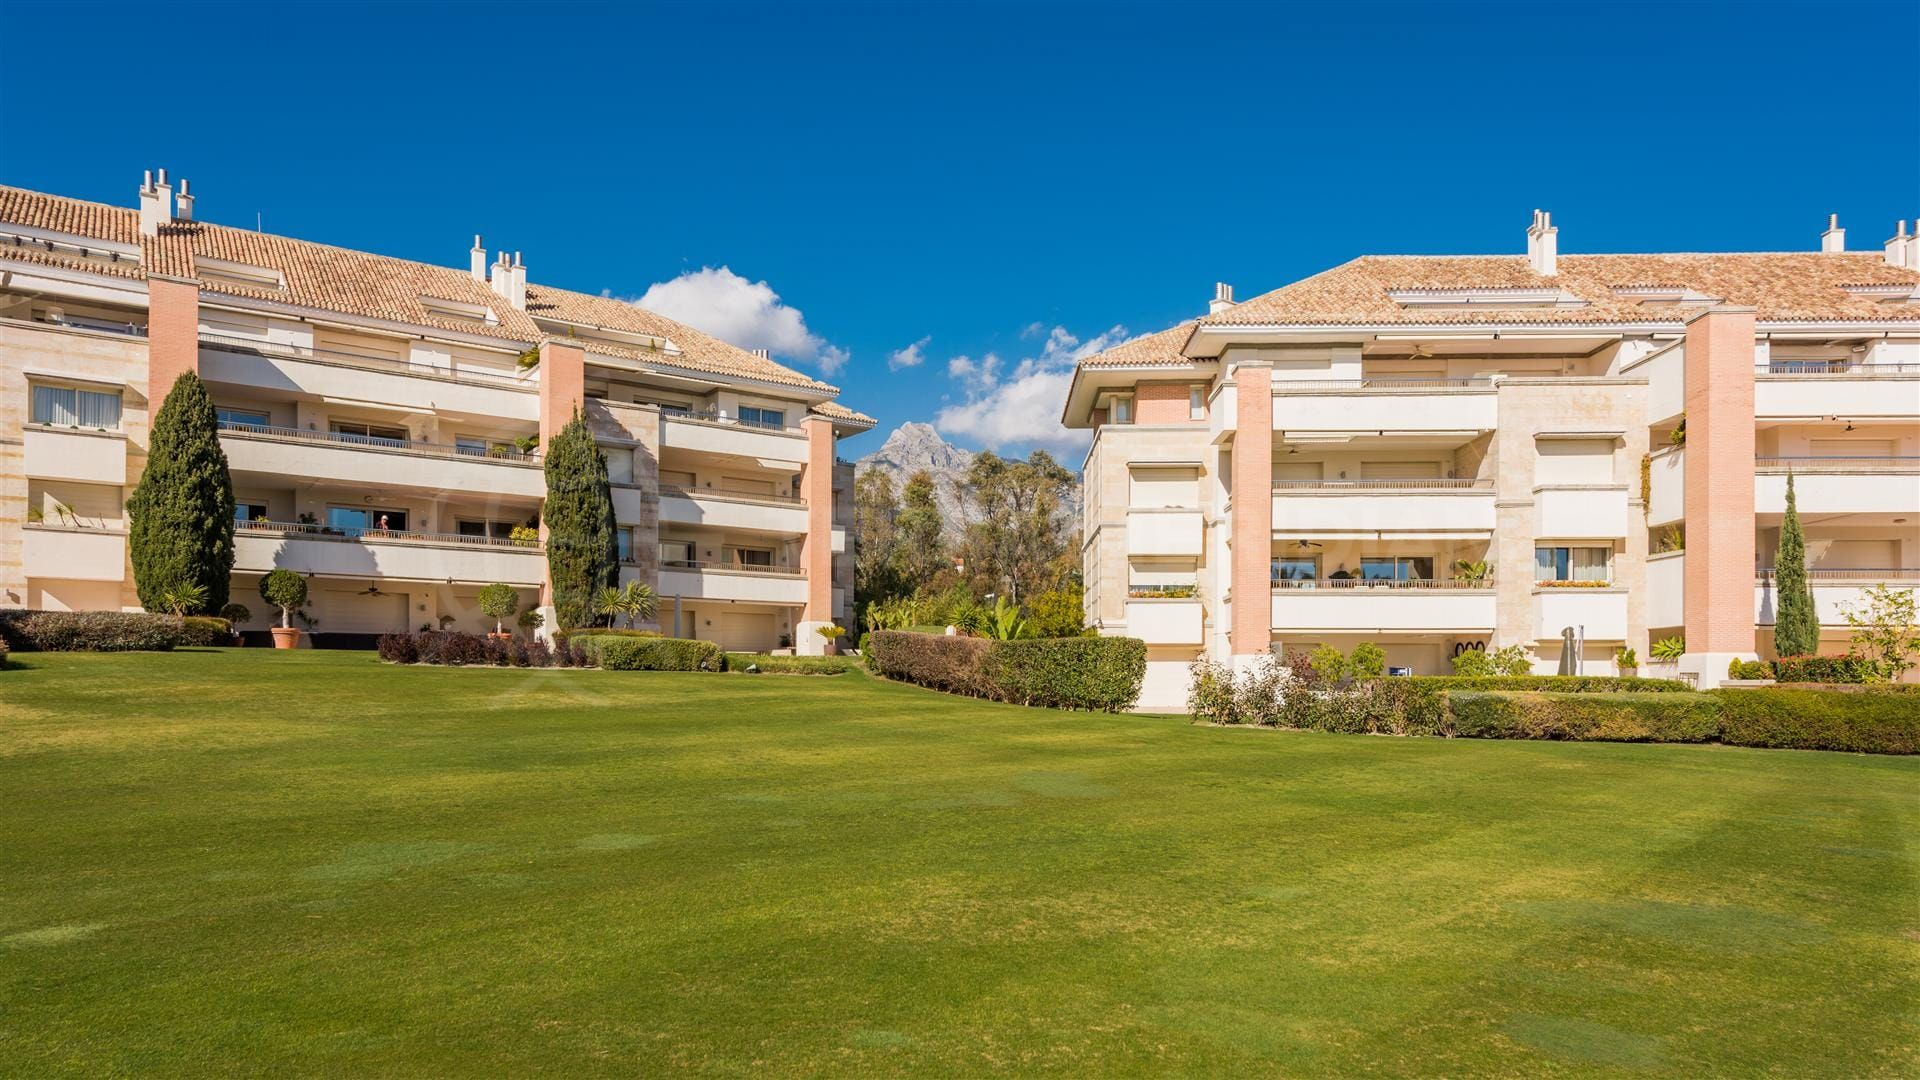 Luxurious Marbella apartment in exclusive La Trinidad urbanisation on the Golden Mile